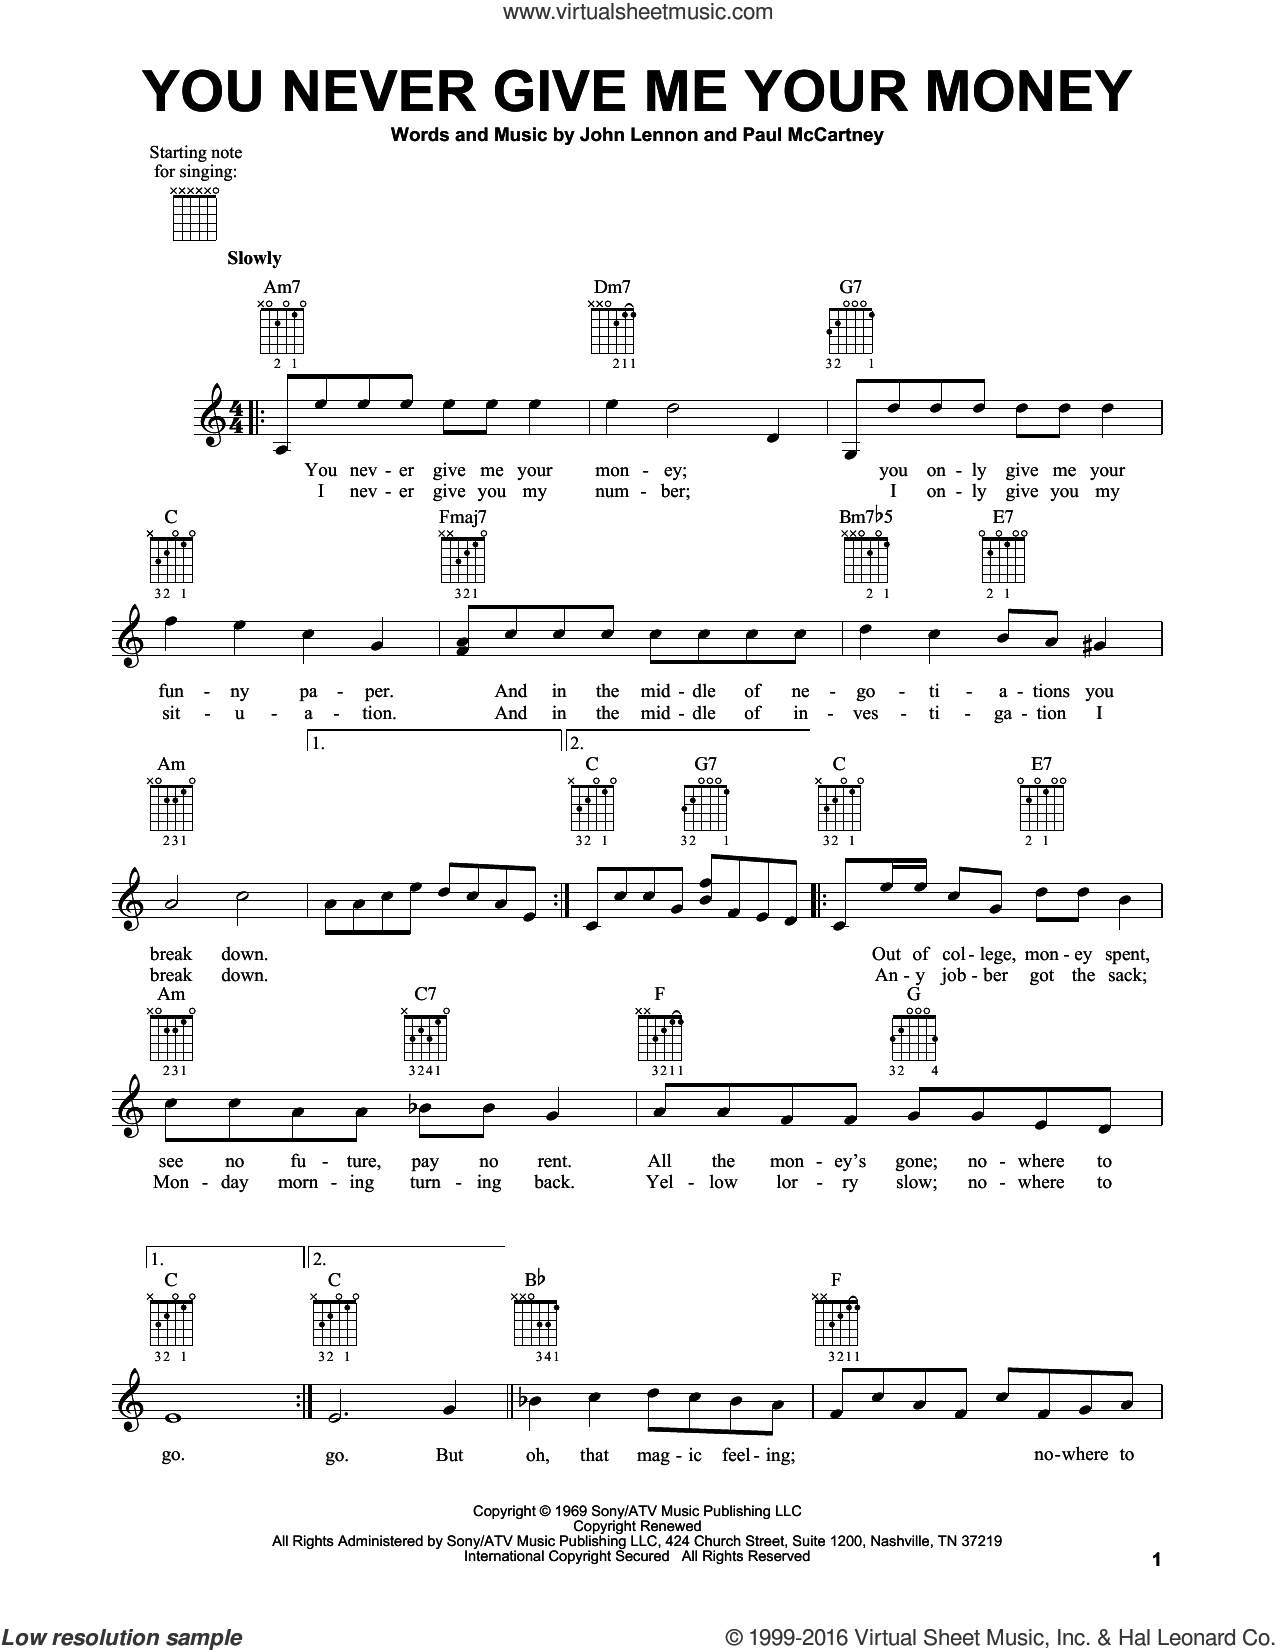 You Never Give Me Your Money sheet music for guitar solo (chords) by The Beatles, John Lennon and Paul McCartney, easy guitar (chords). Score Image Preview.